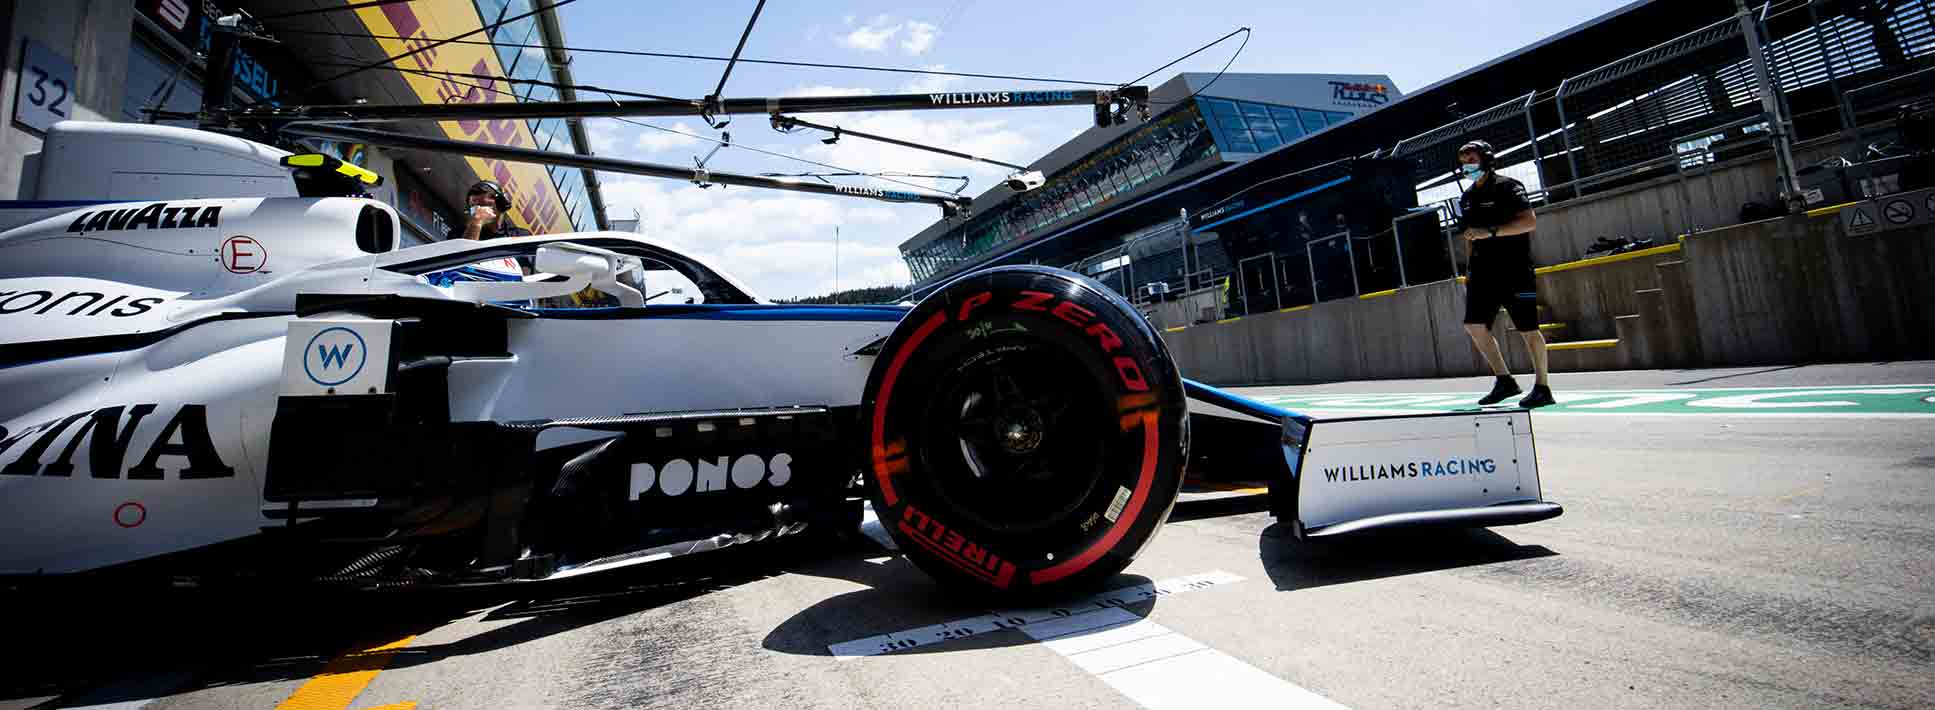 Williams Racing Announce Partnership Extension with PONOS